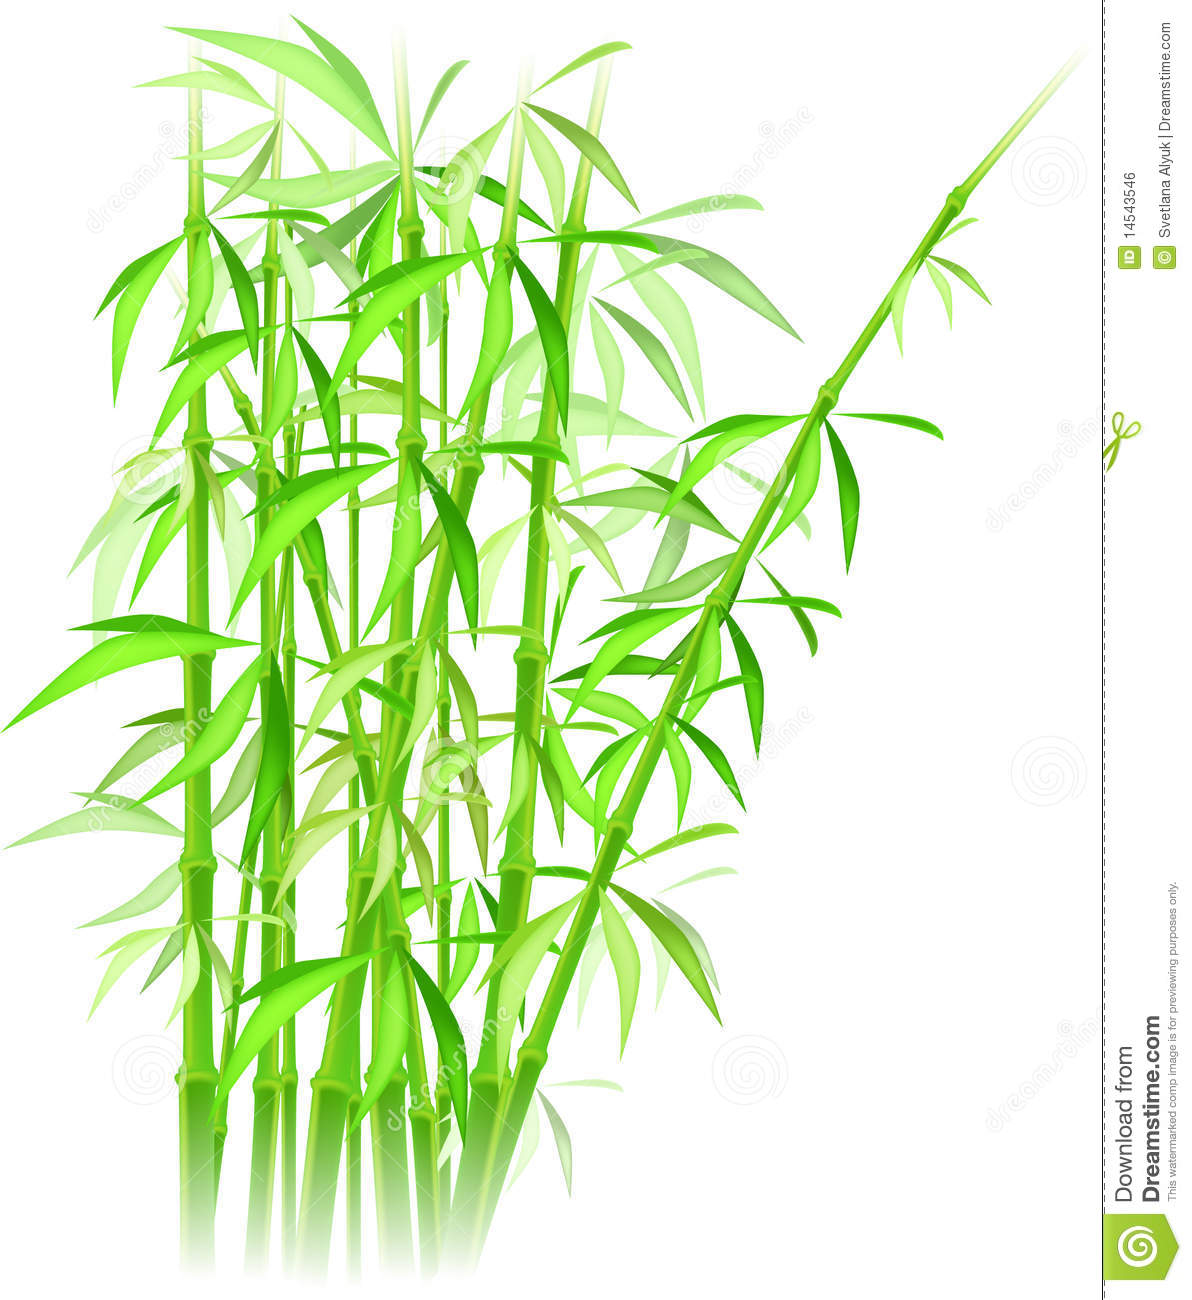 Bamboo online dating